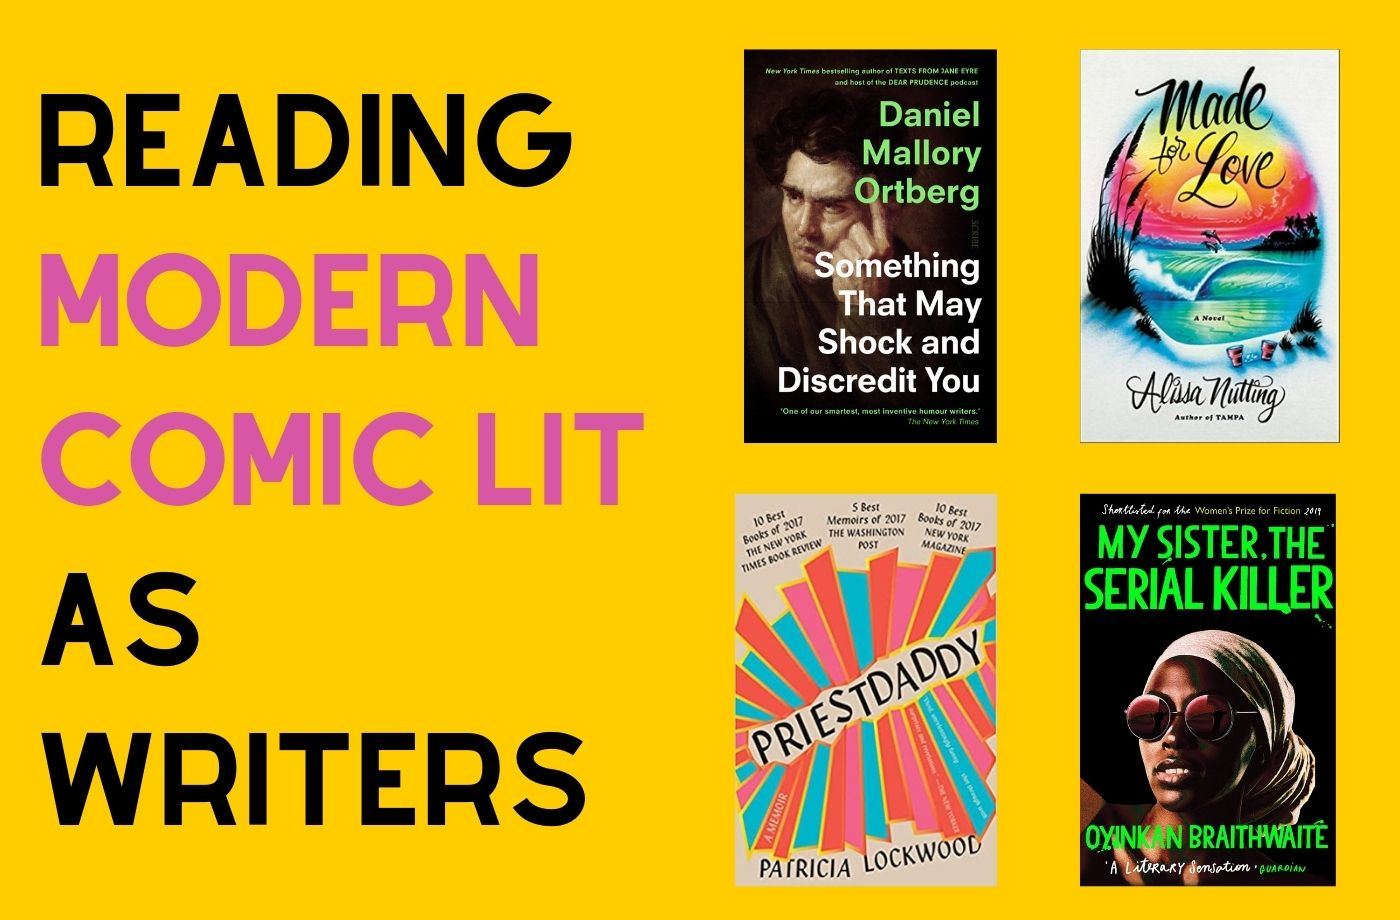 Catapult online classes: Caitlin Kunkel, 4 Weeks of Reading Modern Comic Lit as Writers Online, Fiction, Nonfiction, Reading Group